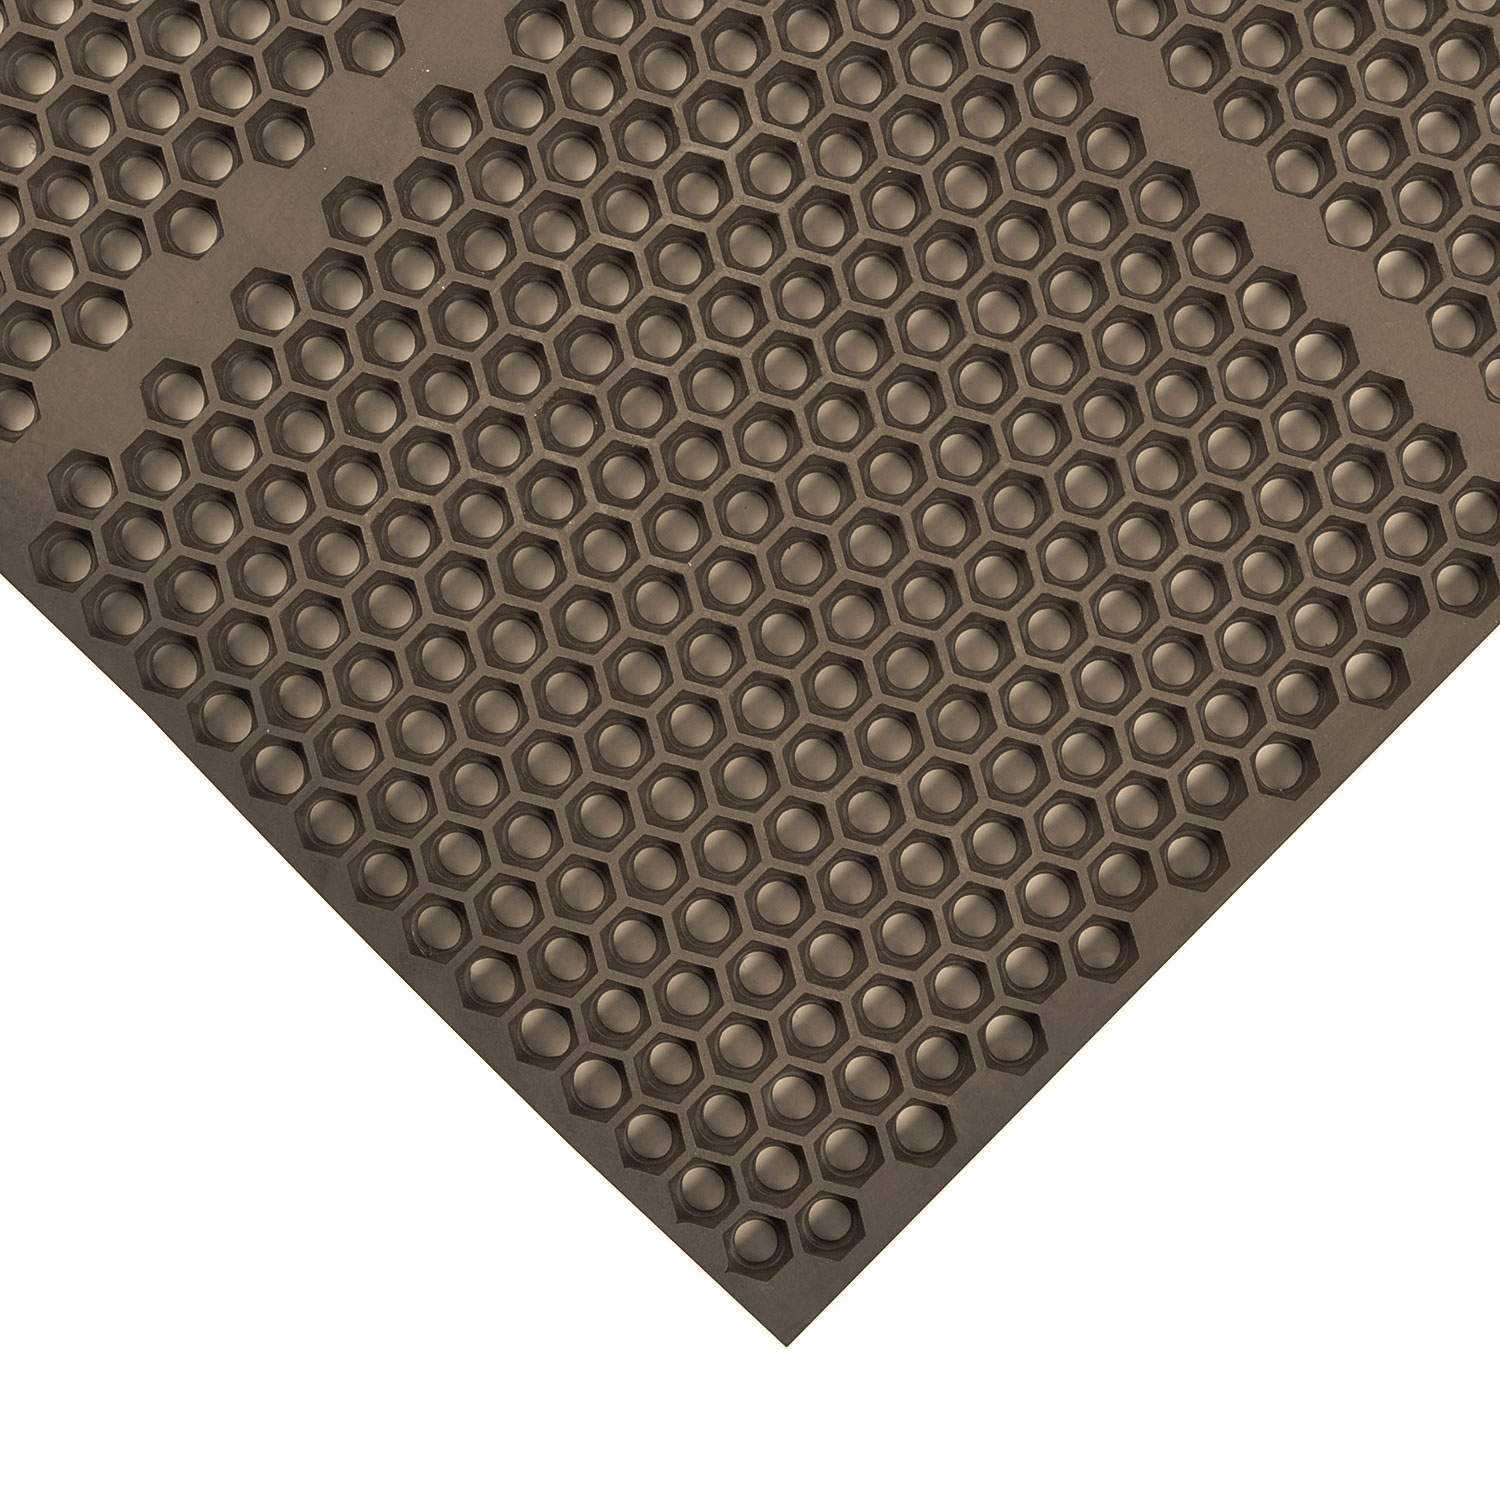 Notrax 406179 Optimat Grease-Resistant Floor Mat, 36 x 48 in, 1/2 in Thick, Brown